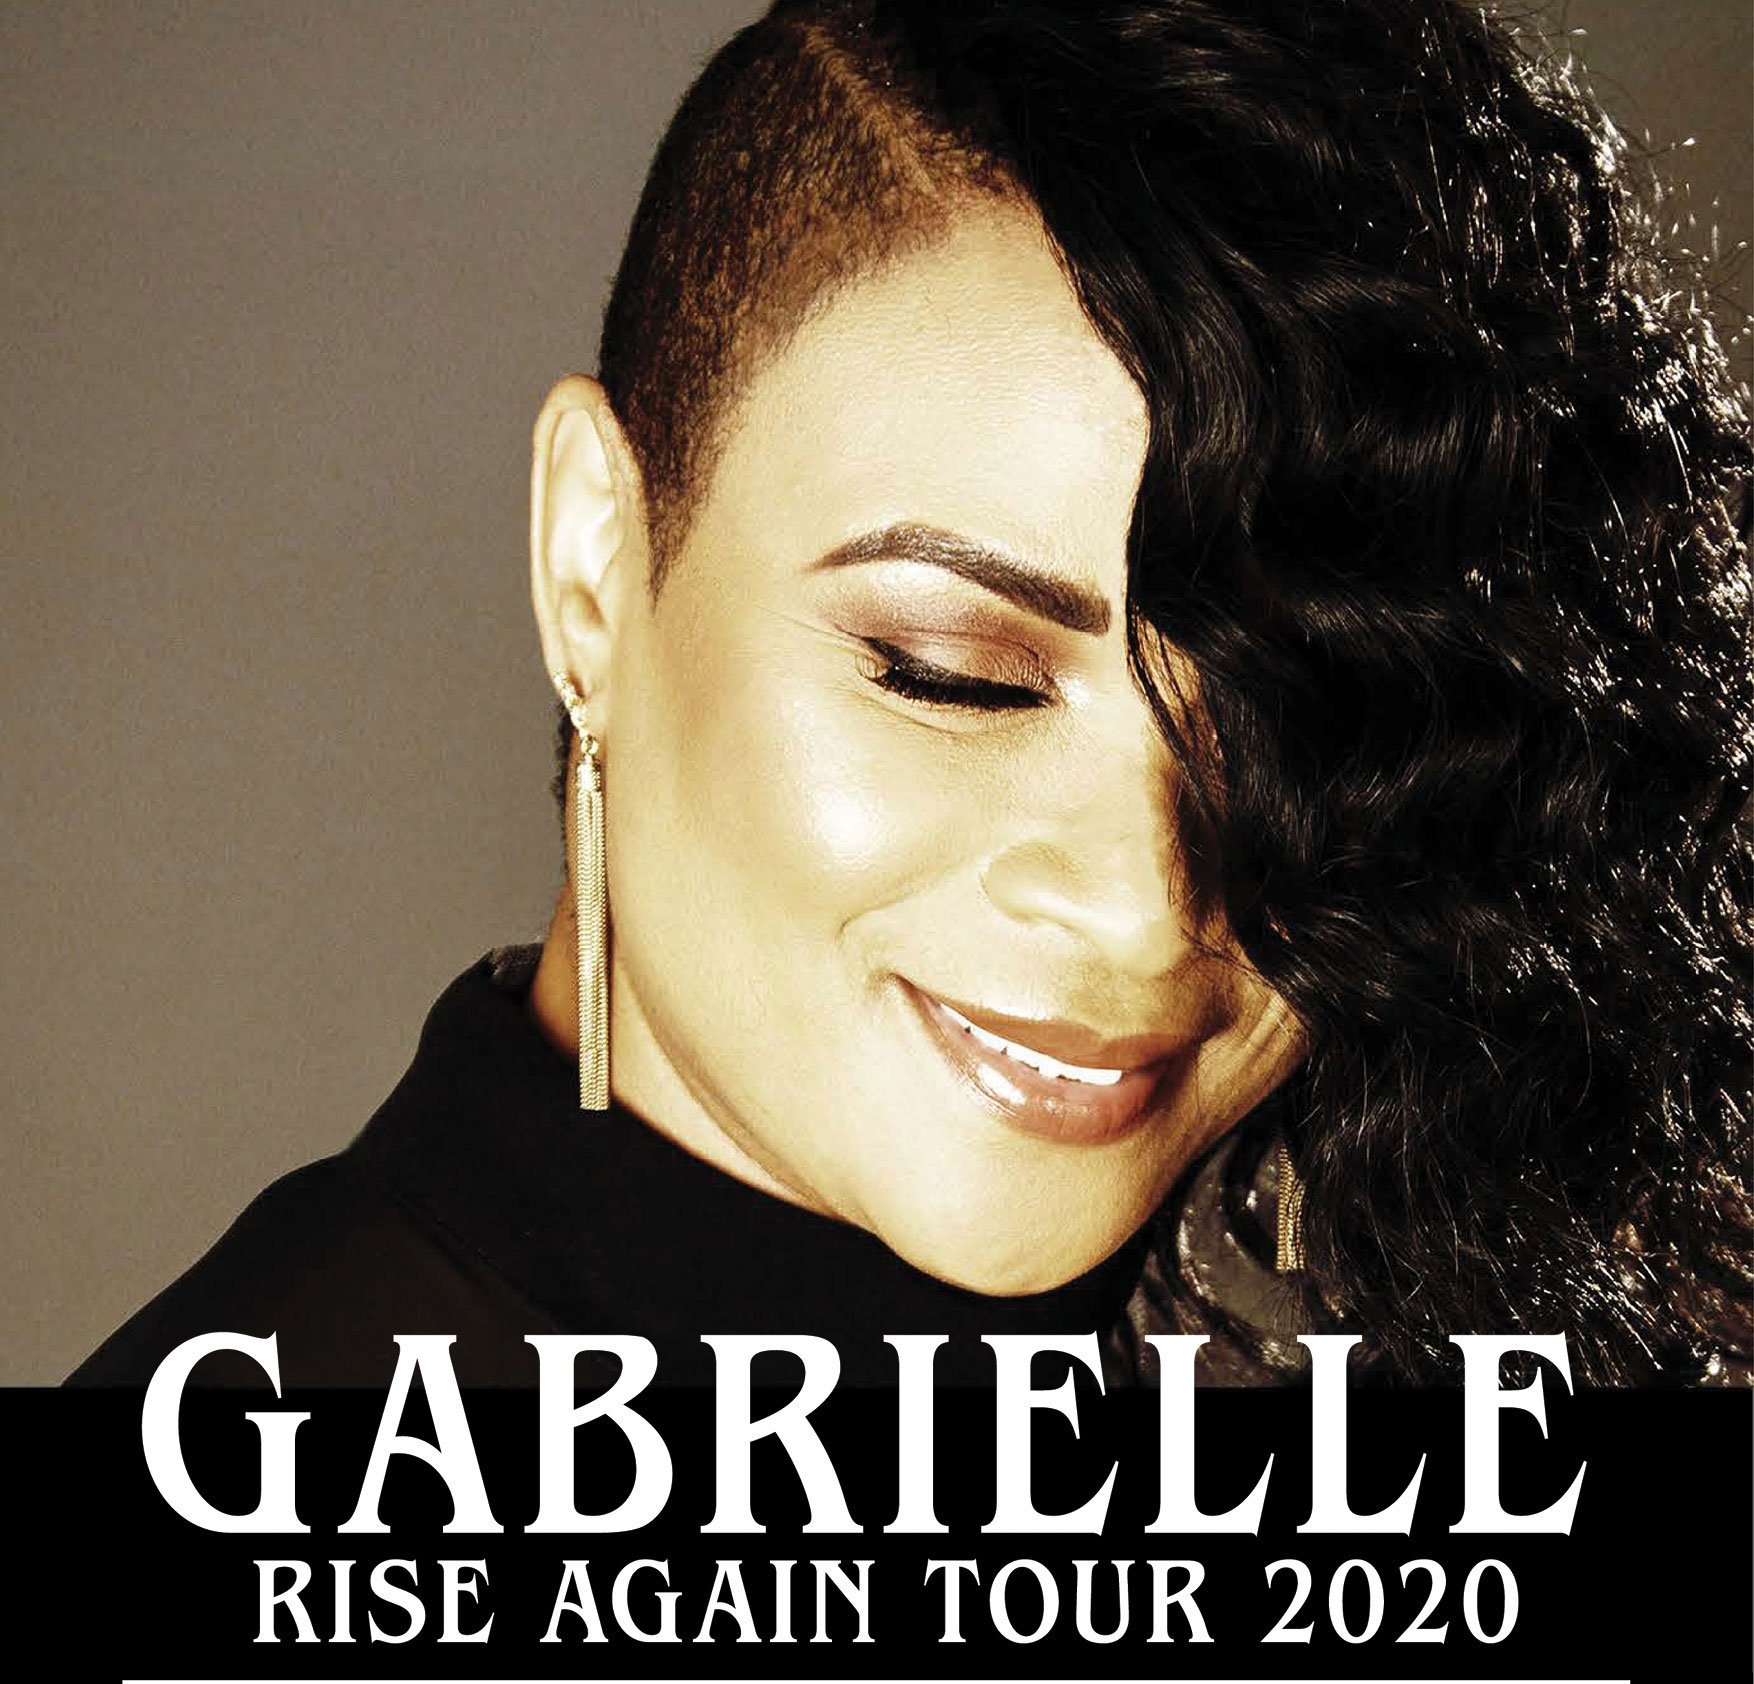 GABRIELLE brings the RISE AGAIN Tour 2020 to Ulster Hall, Belfast, Sunday 29 November